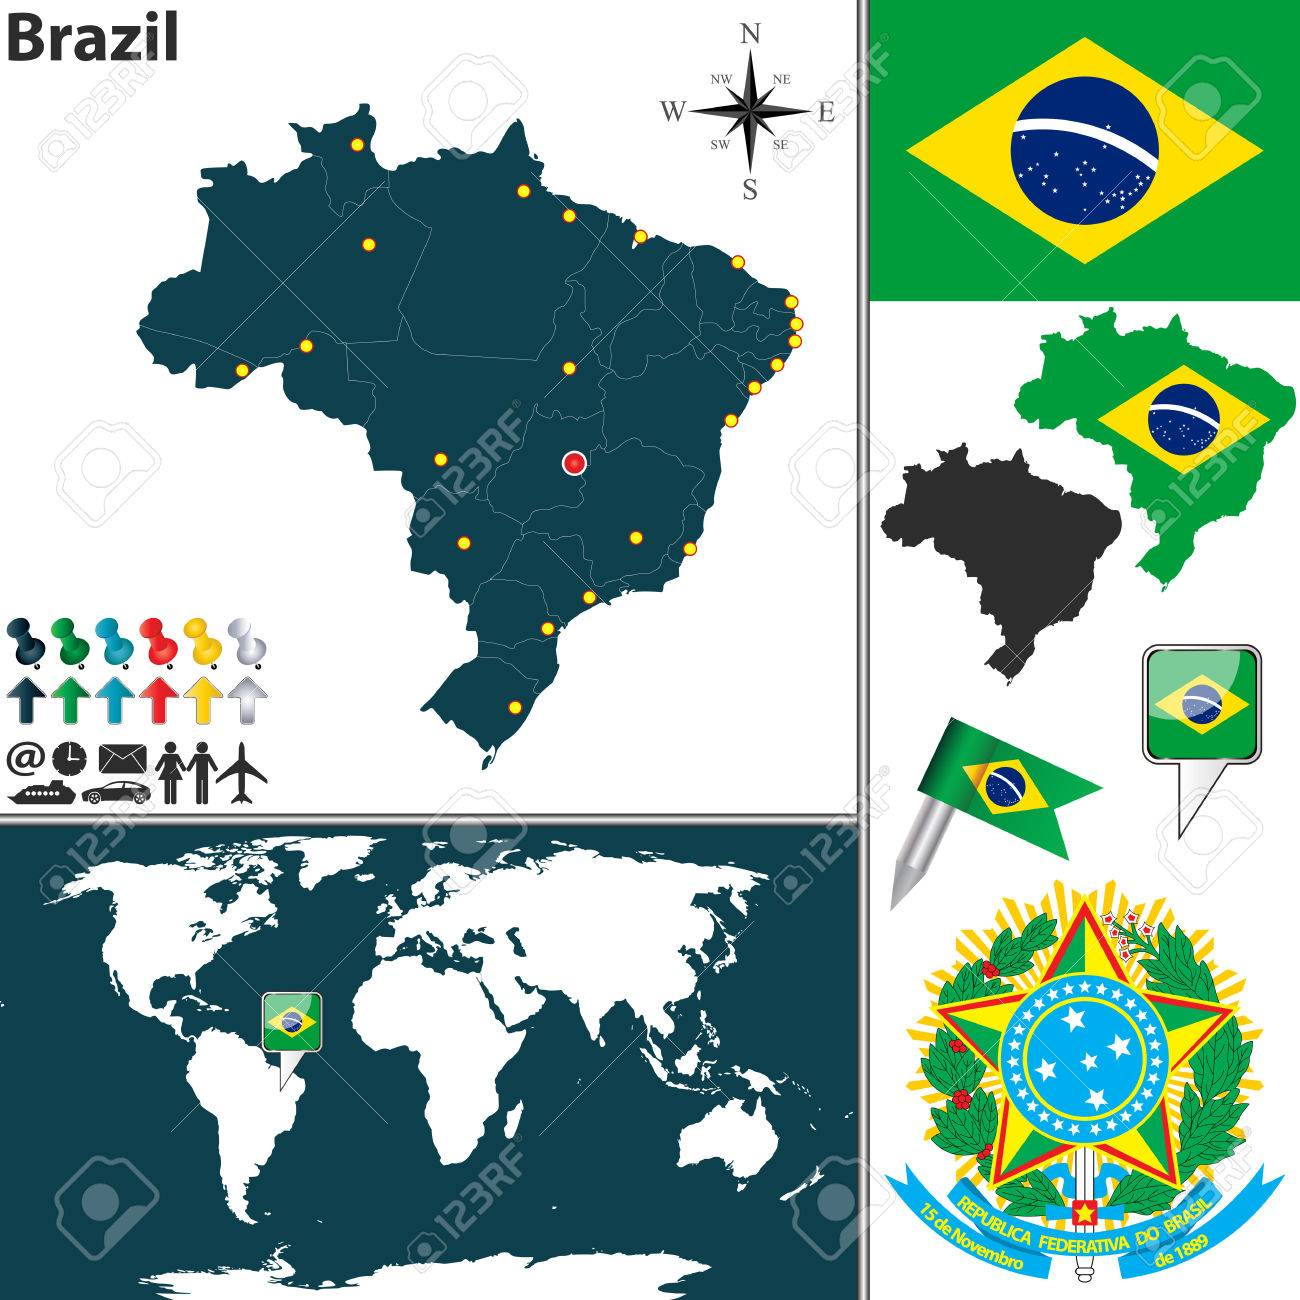 Map of brazil with regions coat of arms and location on world map of brazil with regions coat of arms and location on world map stock vector gumiabroncs Image collections